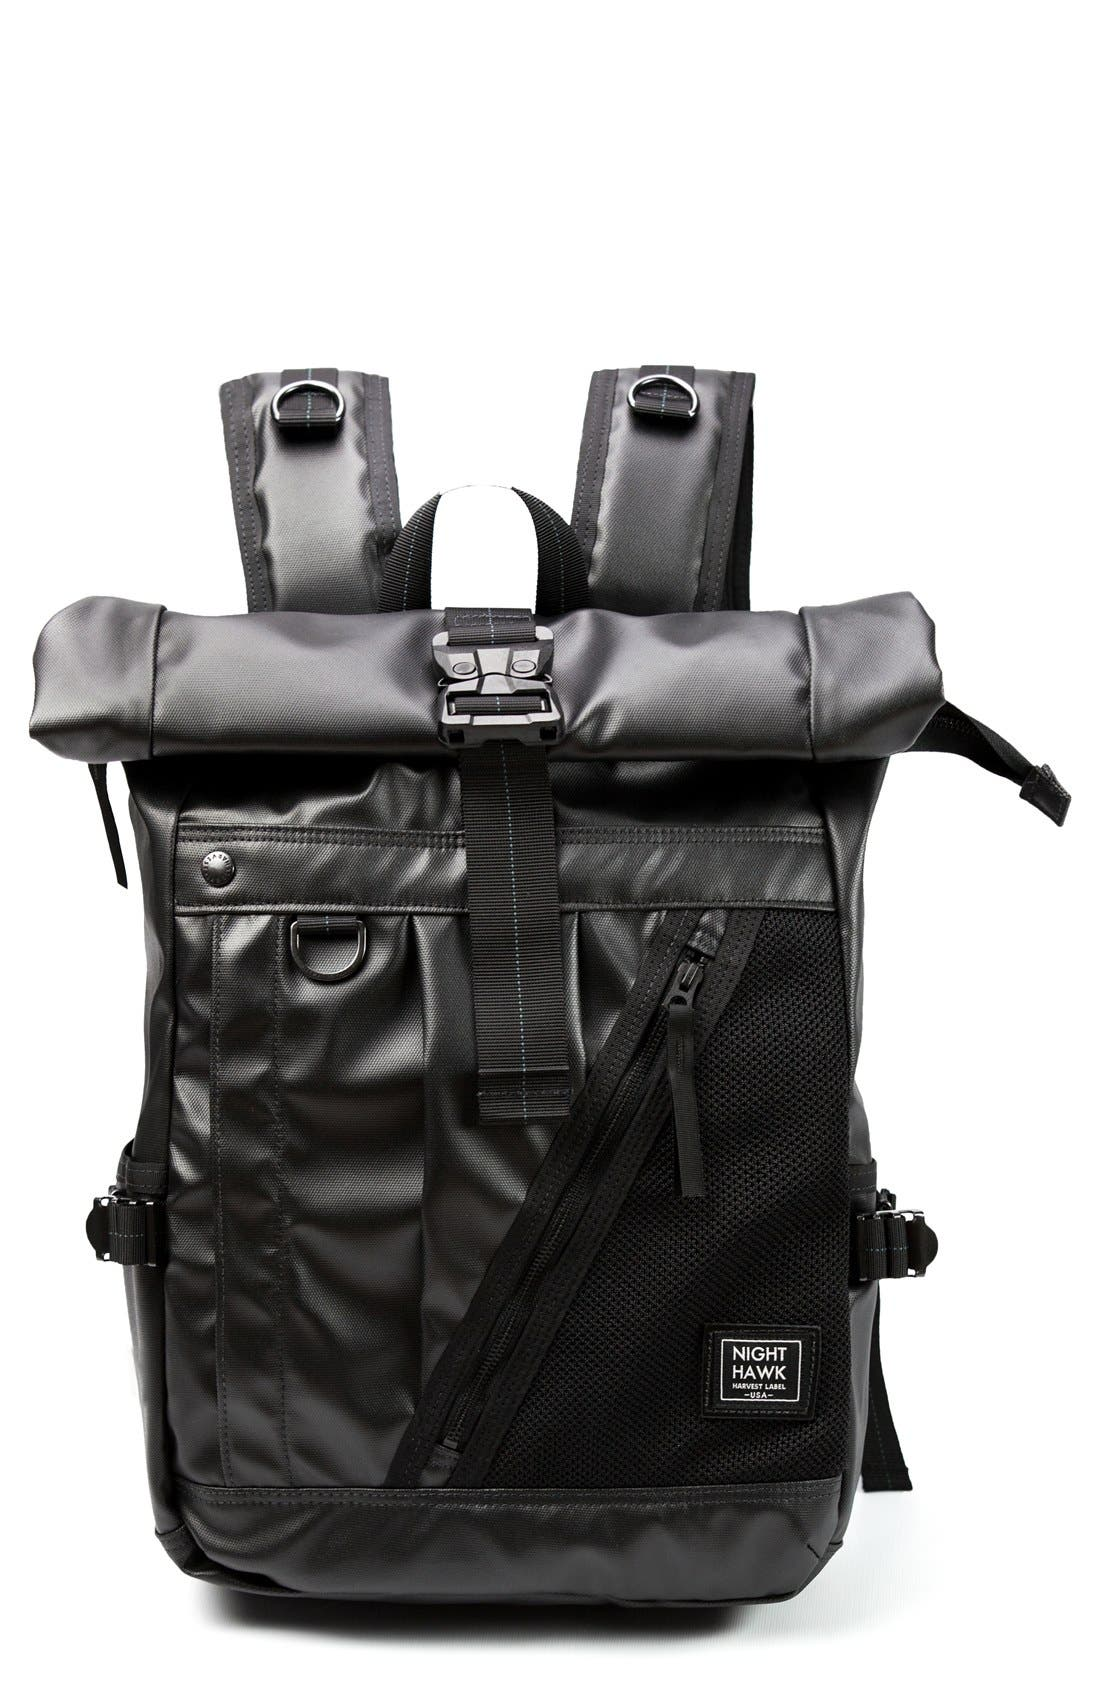 Harvest Label NightHawk Roll Top Backpack